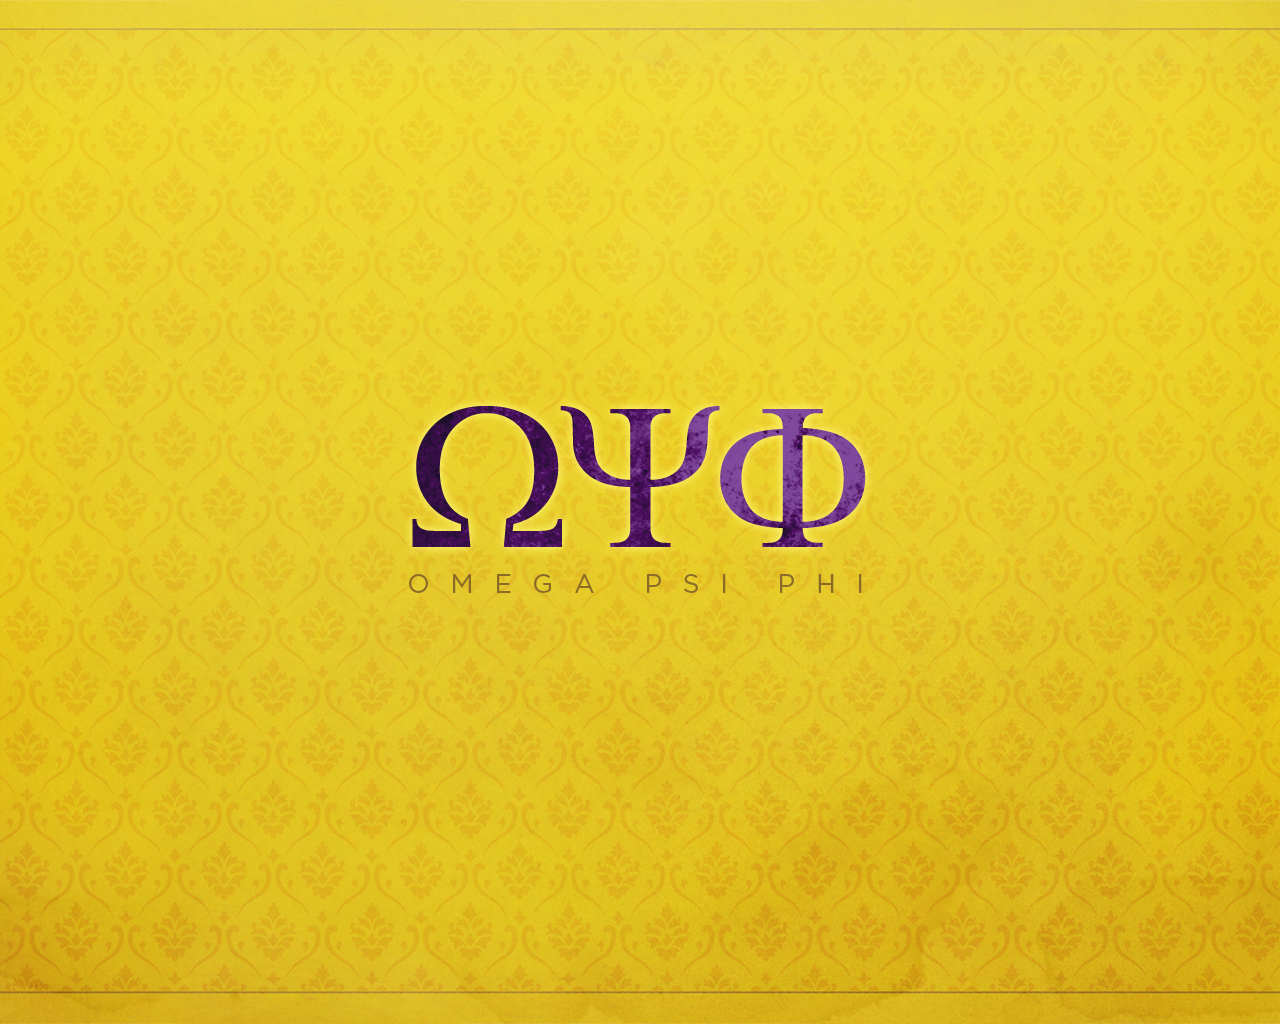 20 Lovely Omega Psi Phi Wallpapers Wall Gallery